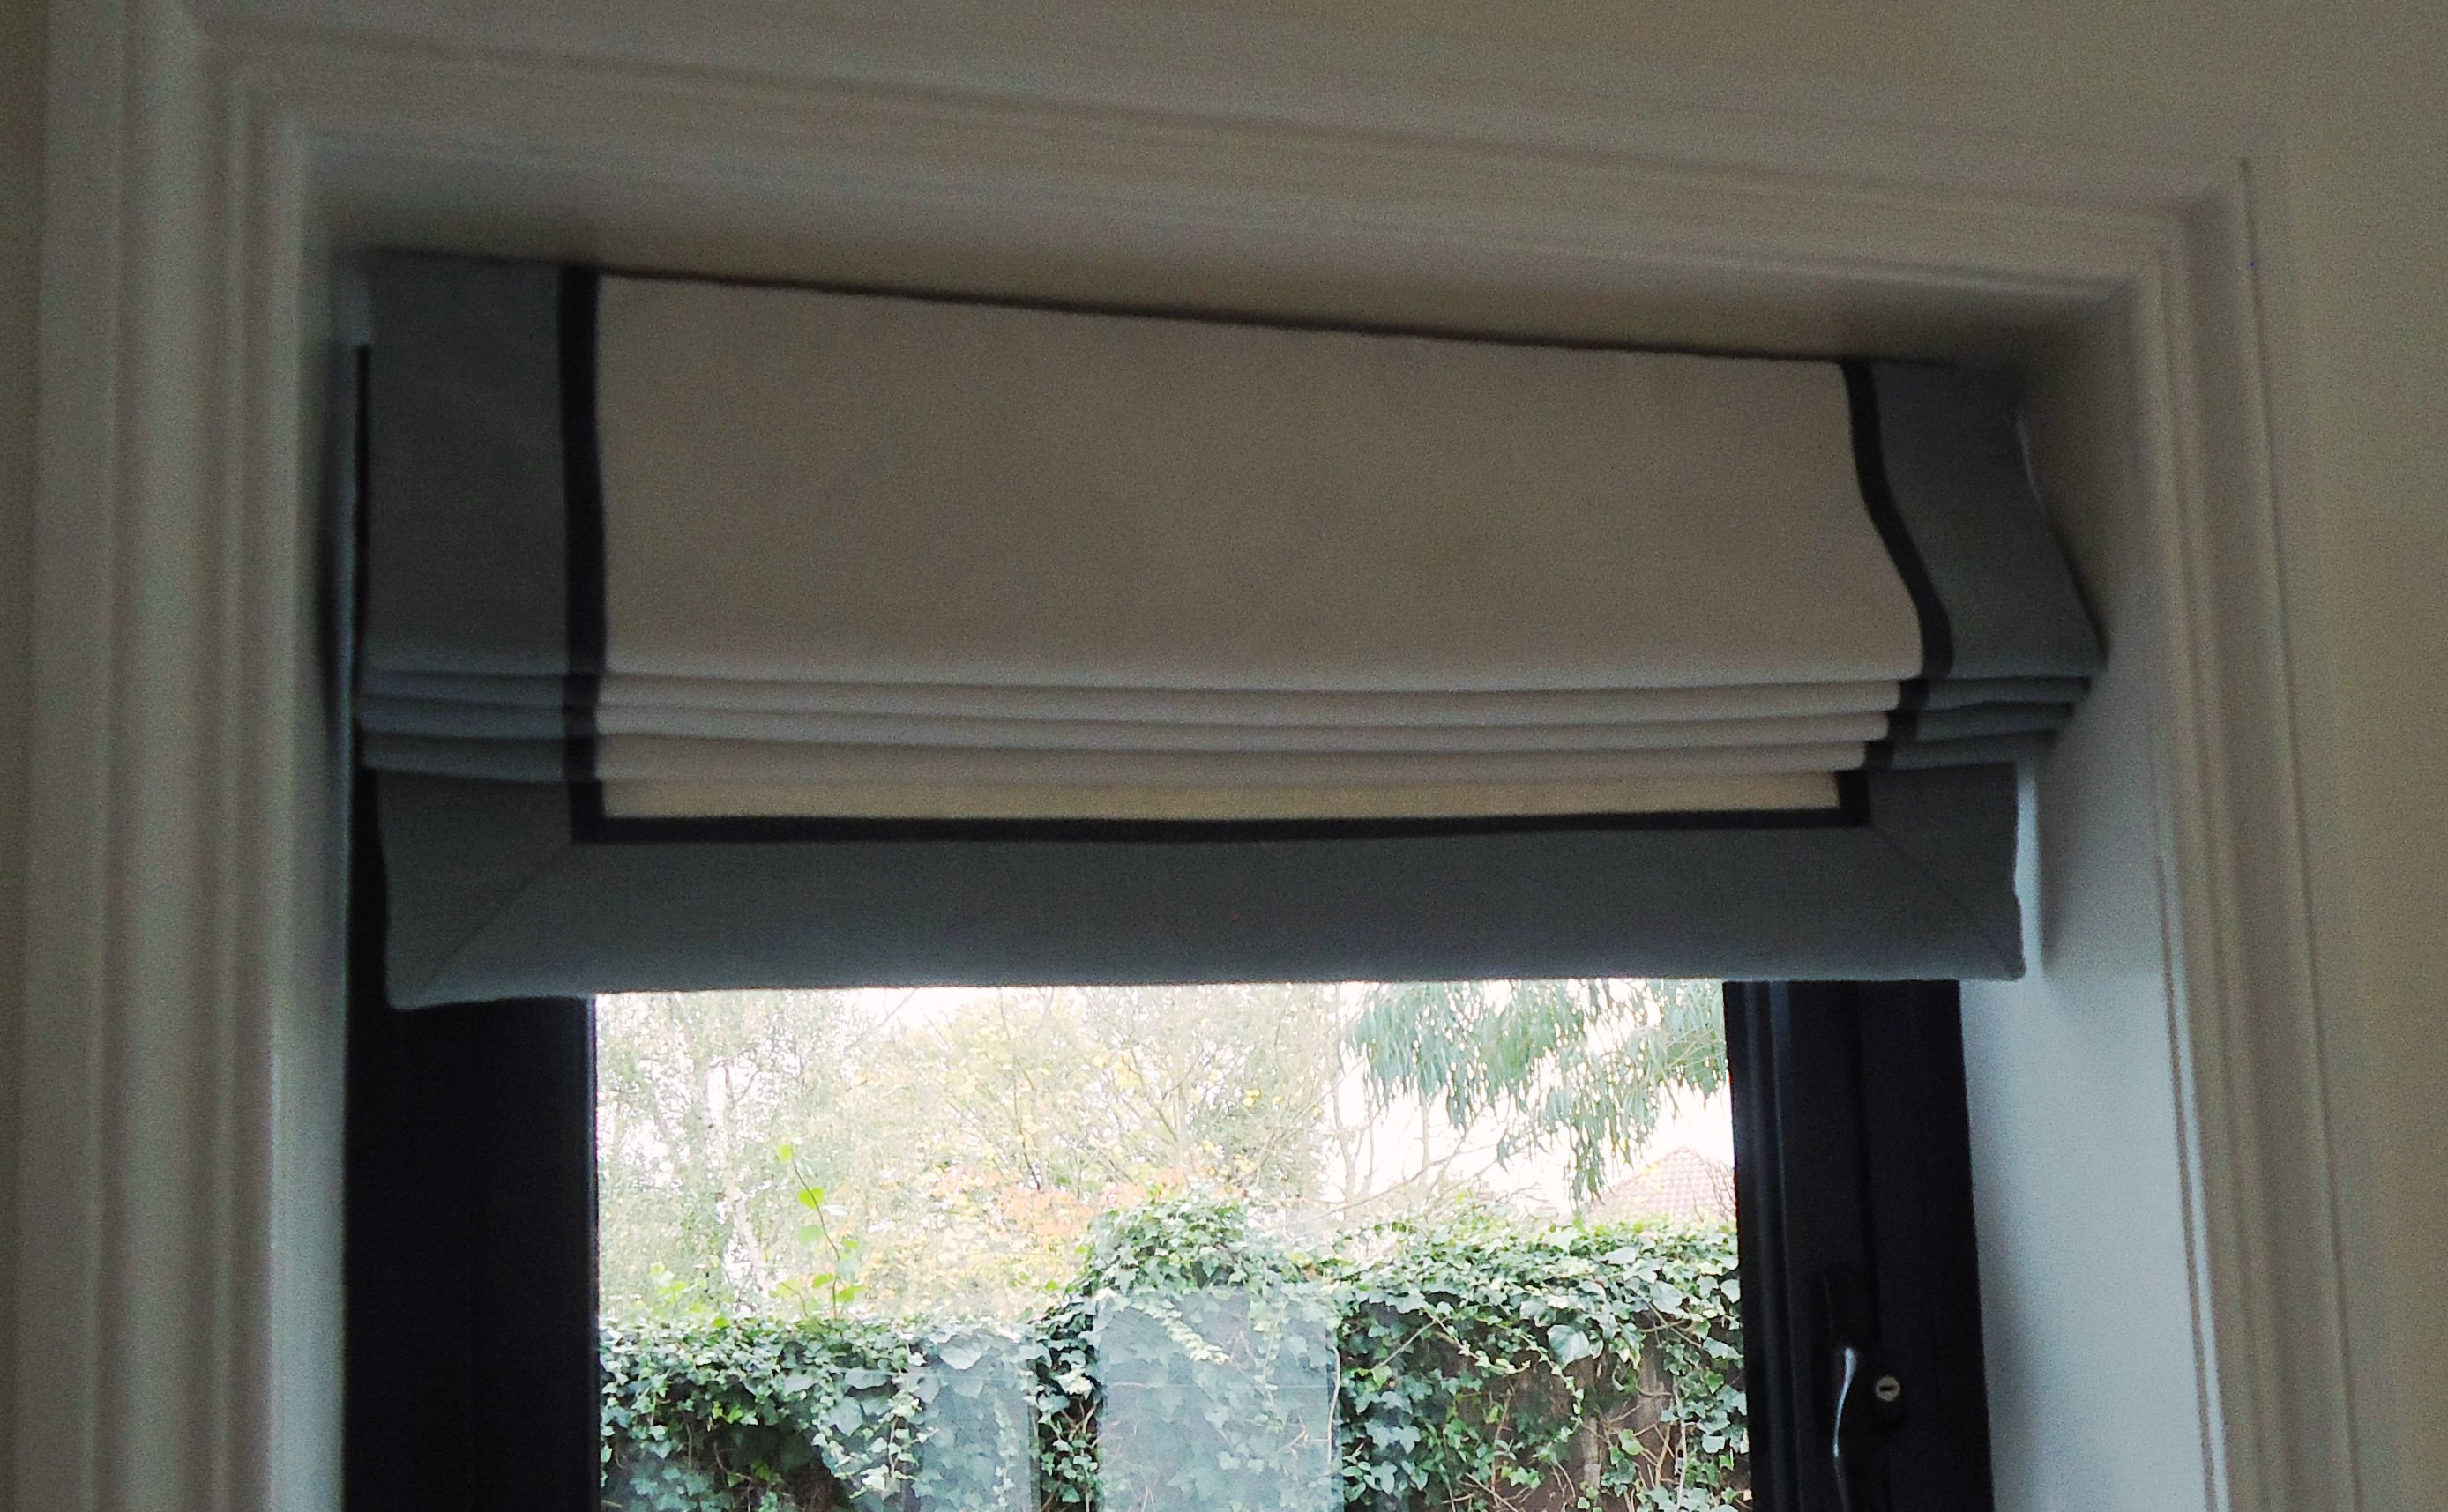 Including Contrasting Borders On A Plain Roman Blind Is A